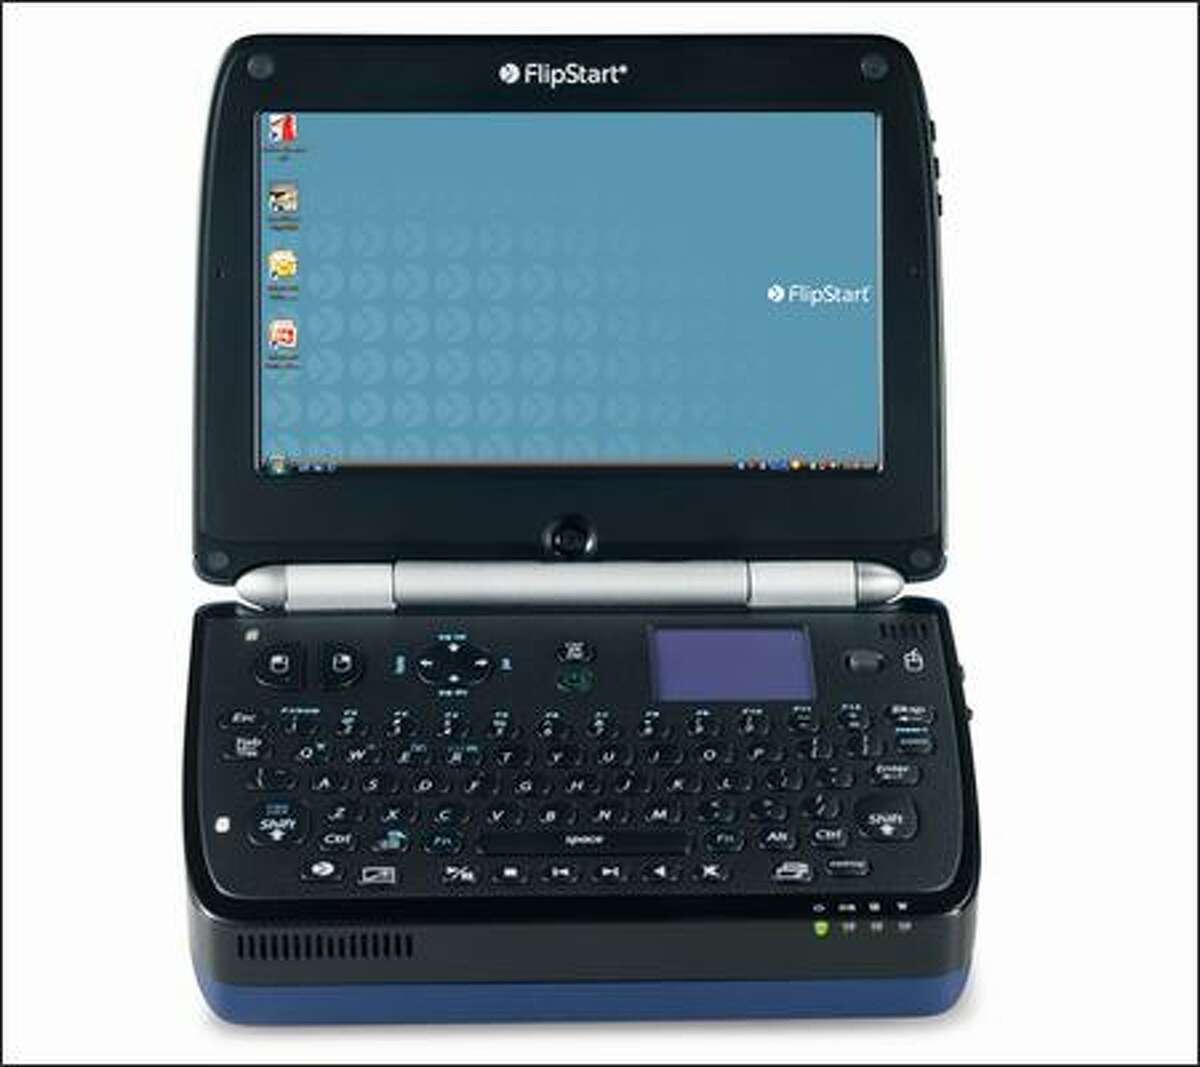 Ultra Mobile Palm Size Tiny Pcs Are Good To Go